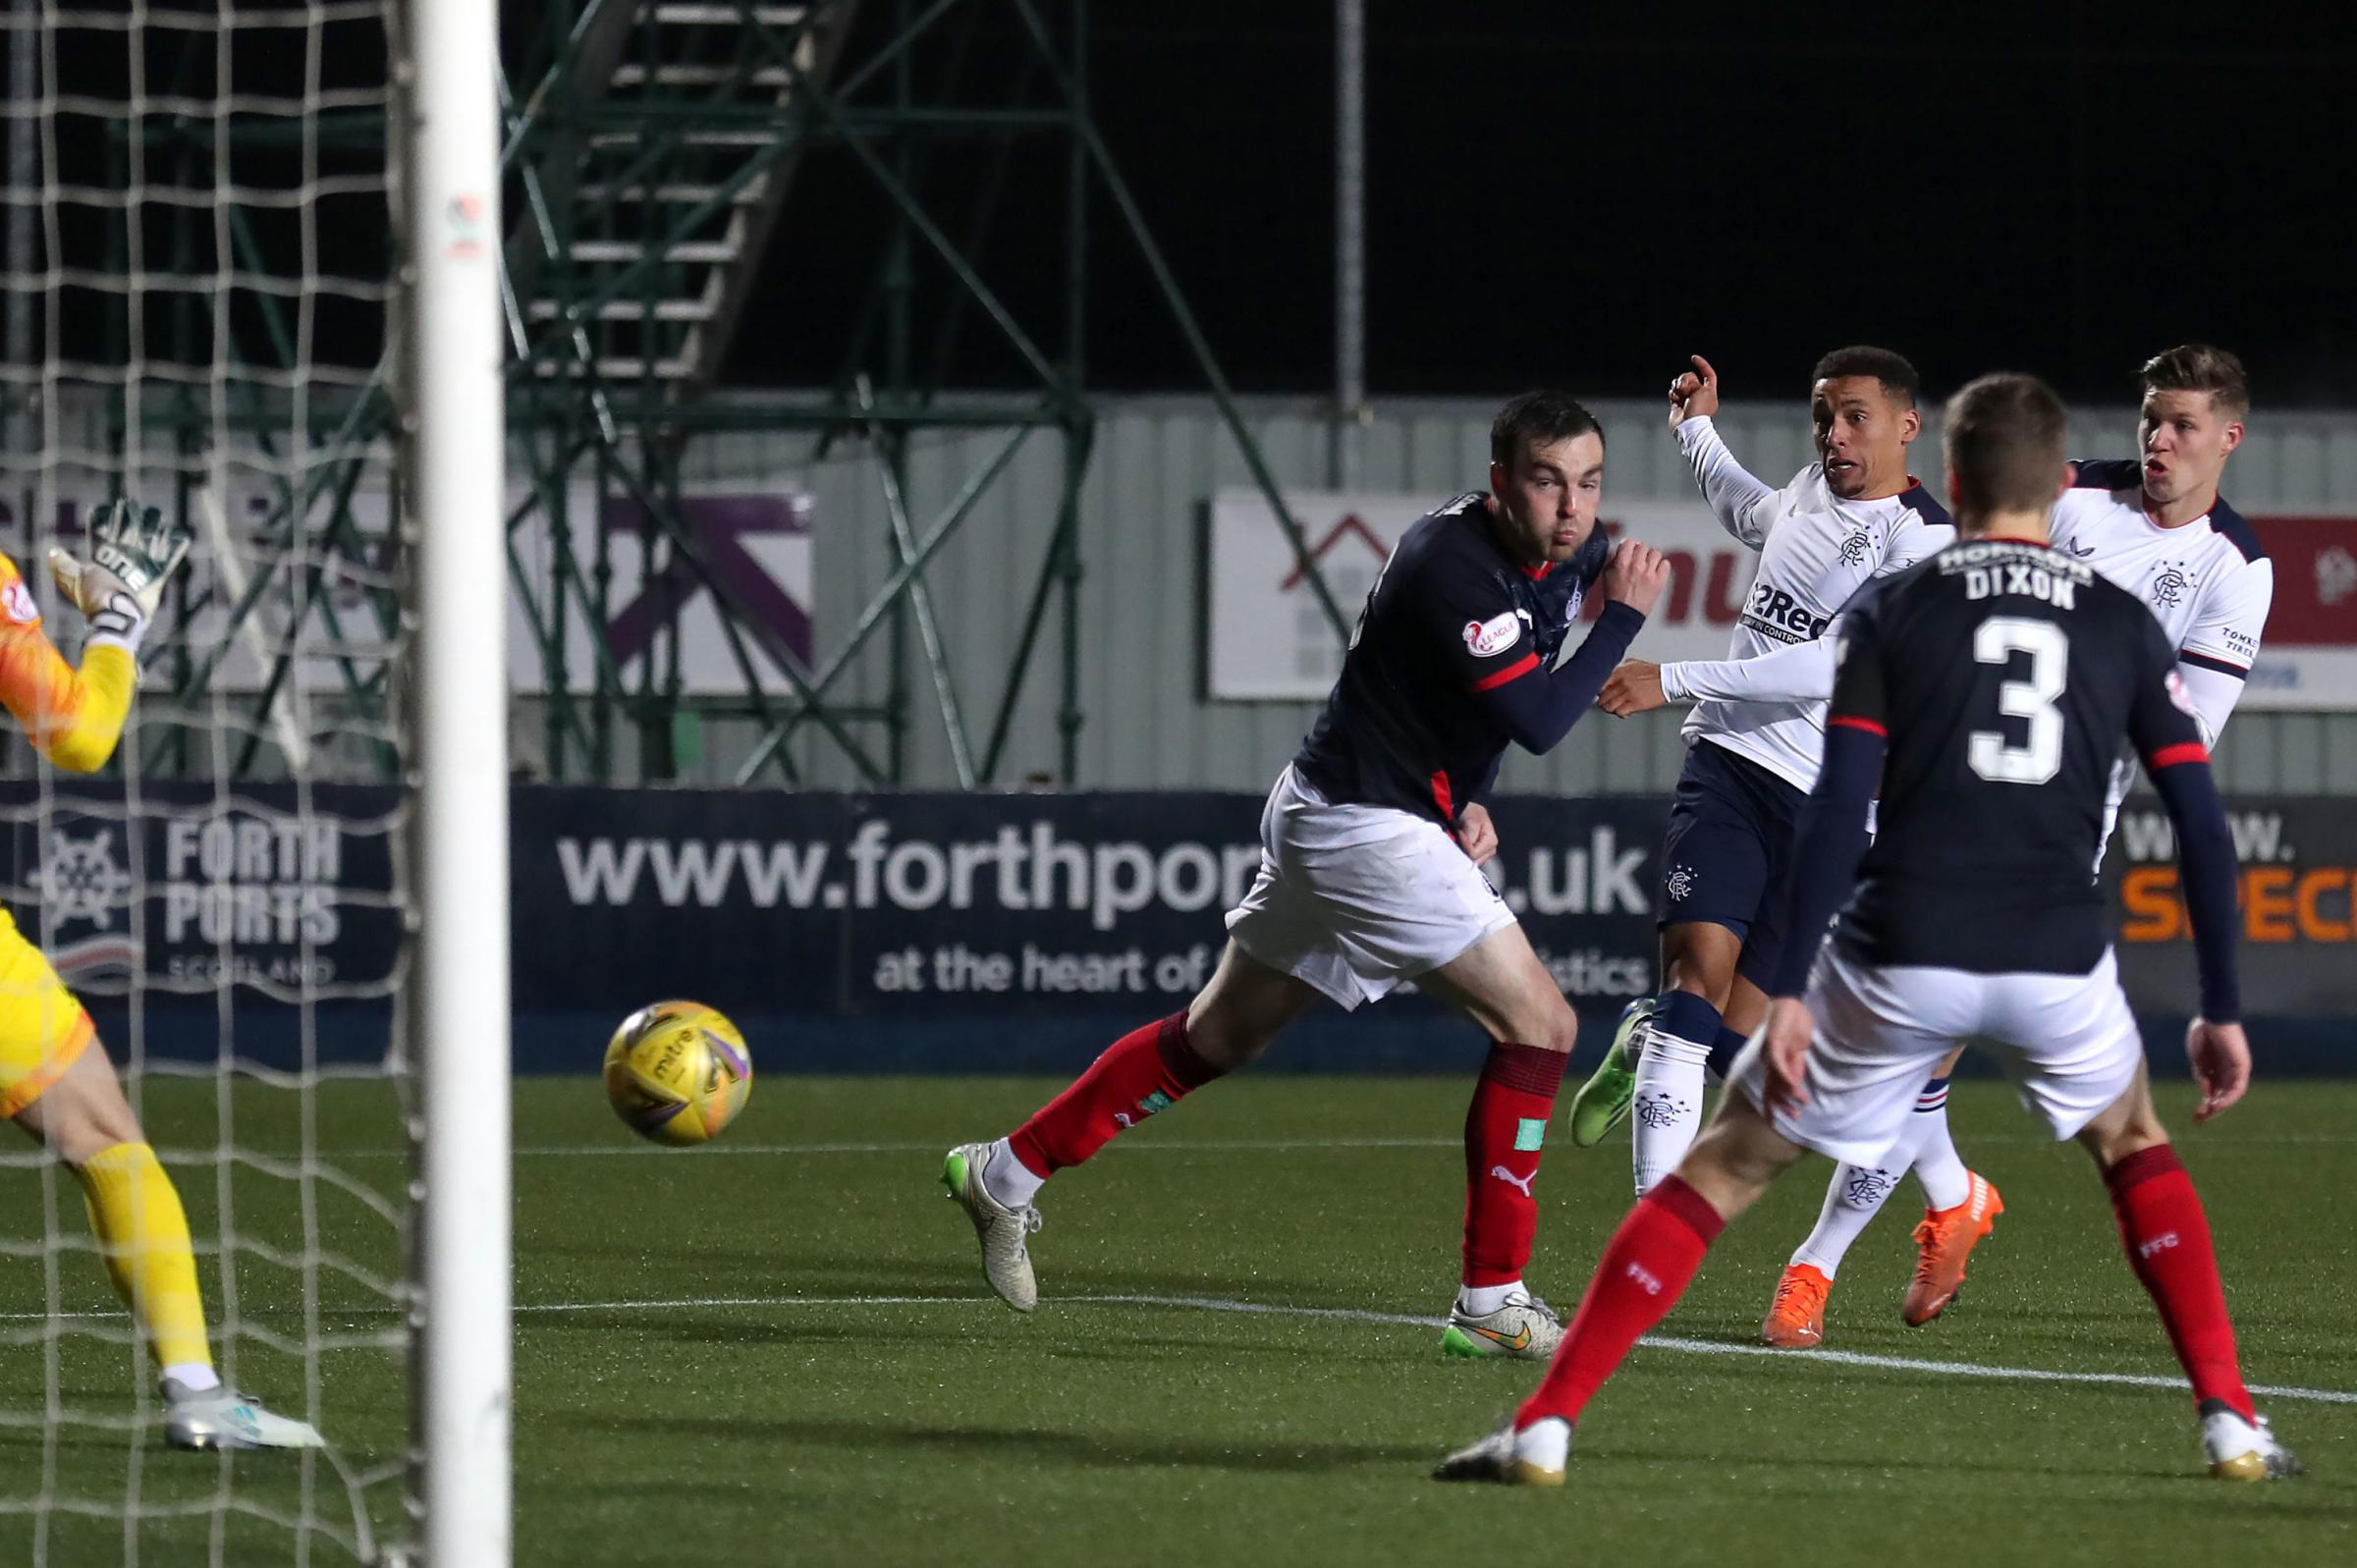 Ratings: How Falkirk fared in 4-0 defeat to Rangers